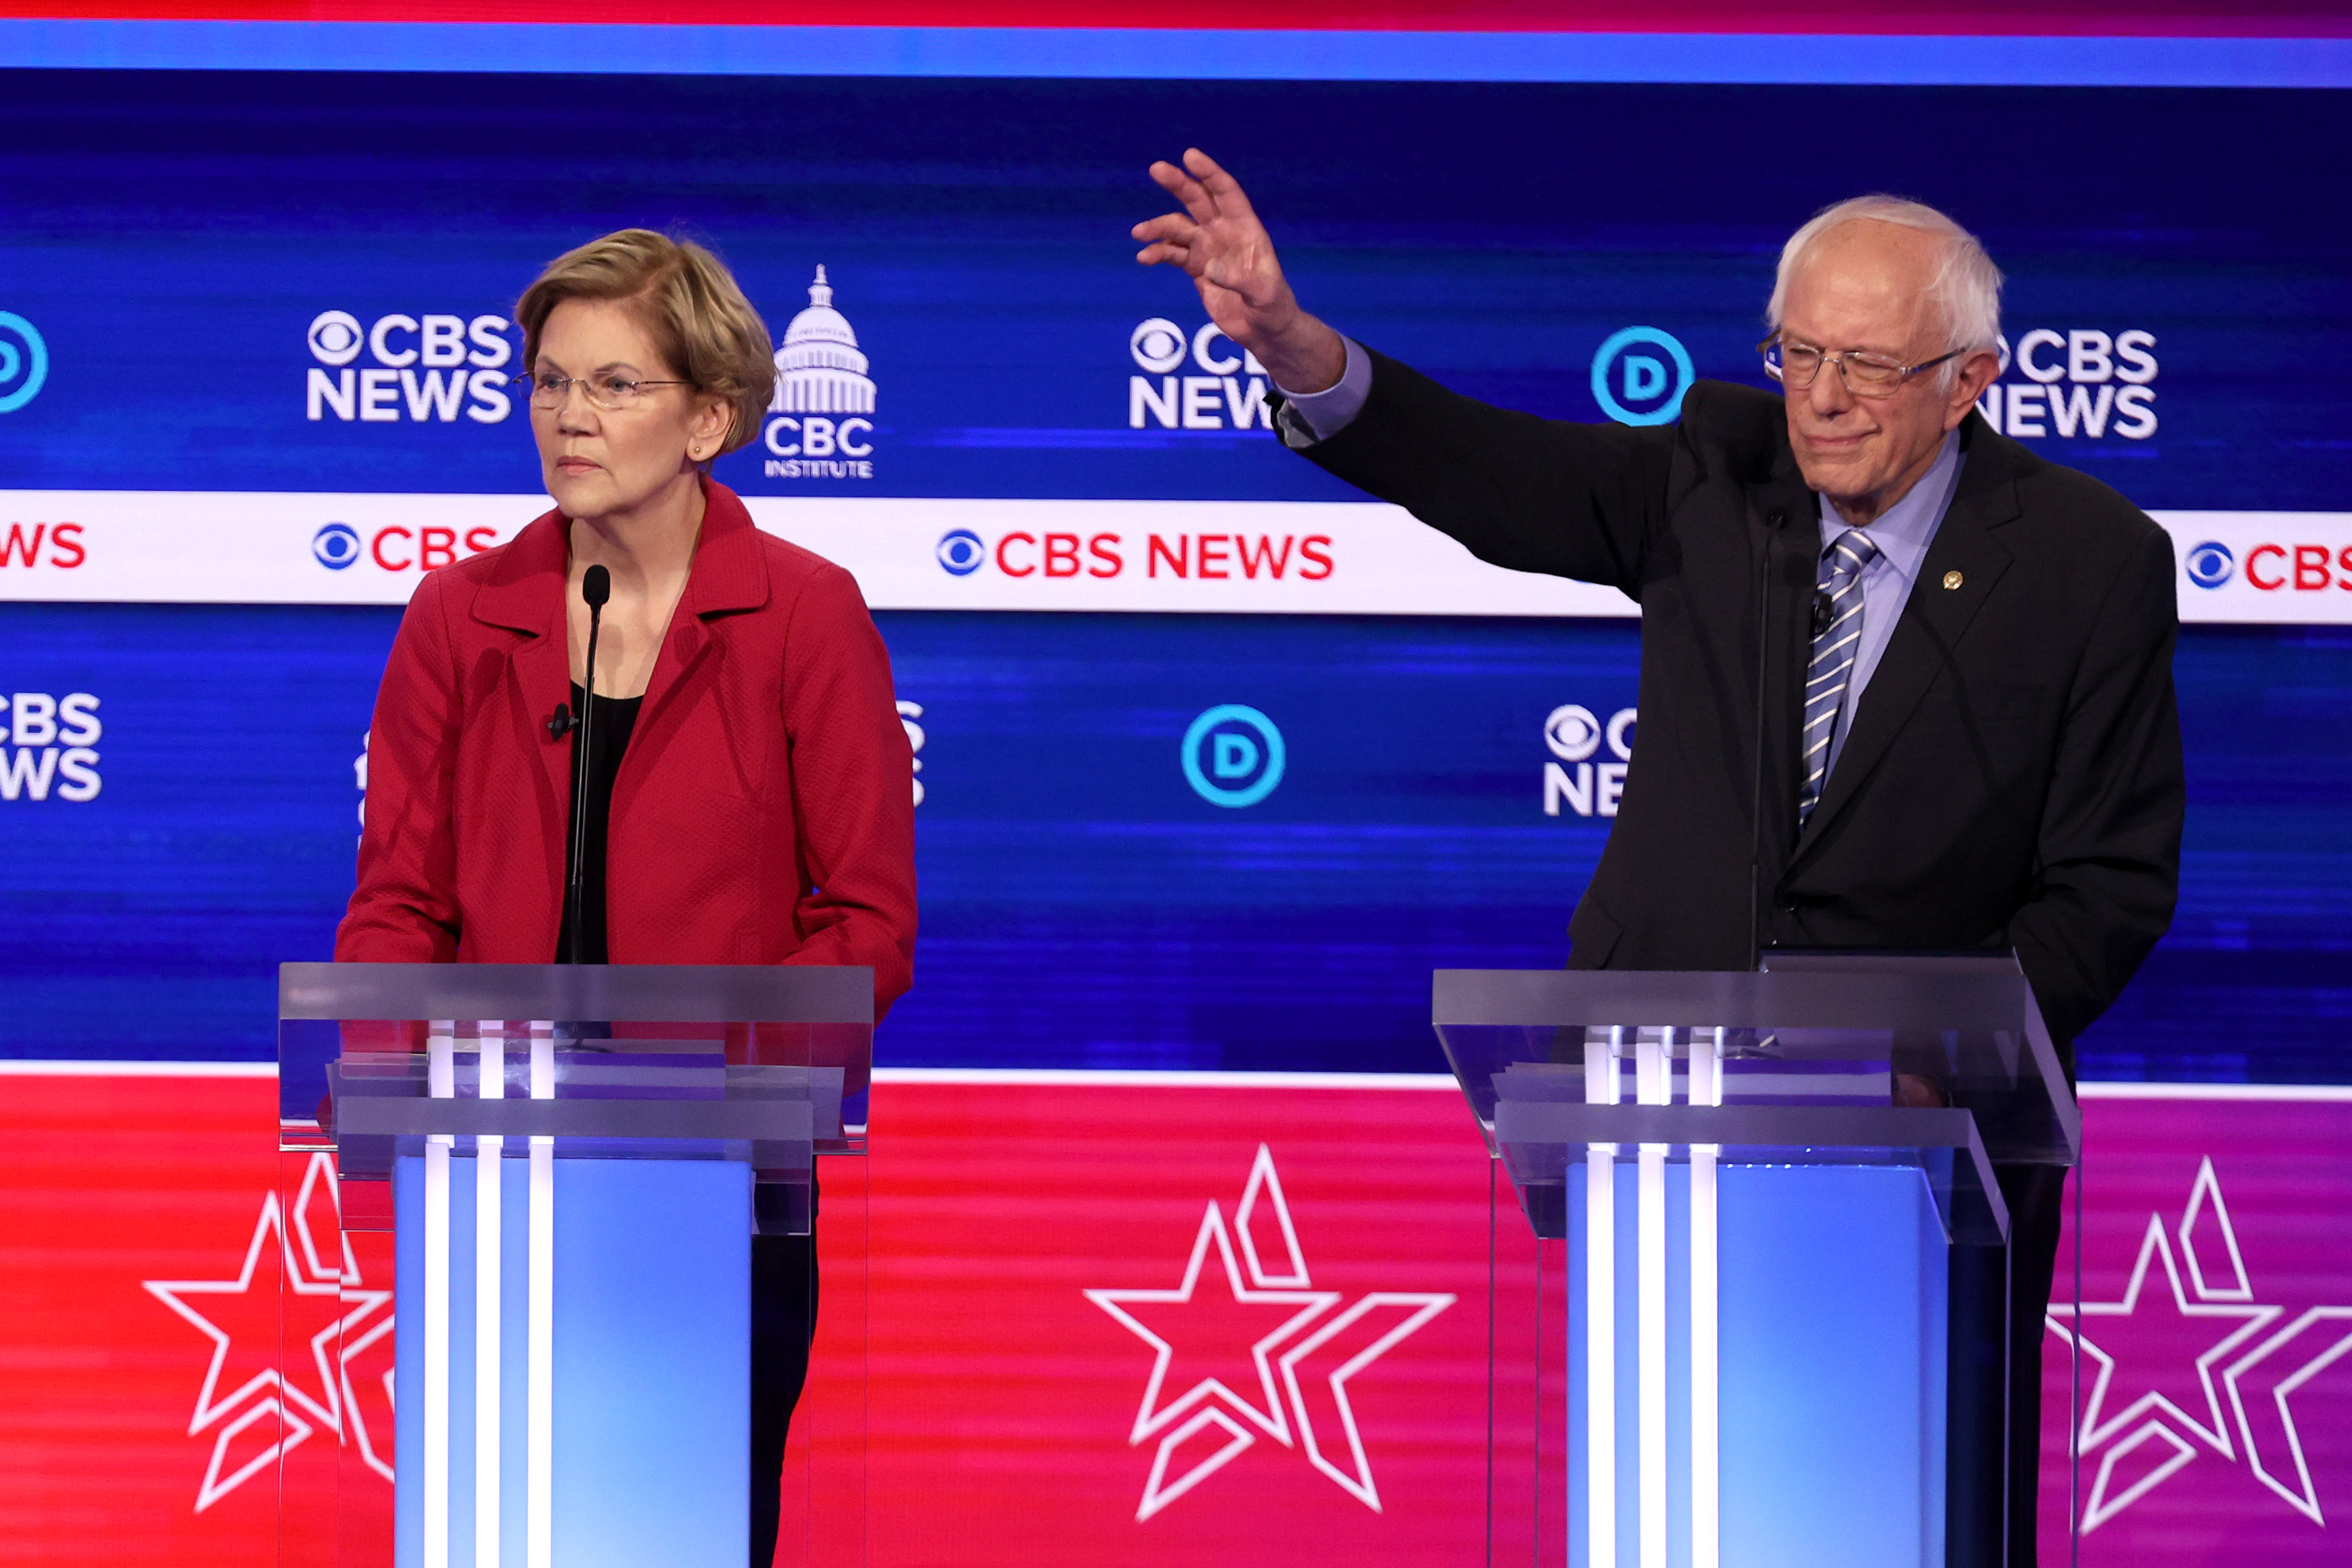 Senators Elizabeth Warren and Bernie Sanders standing behind podiums on the debate stage.